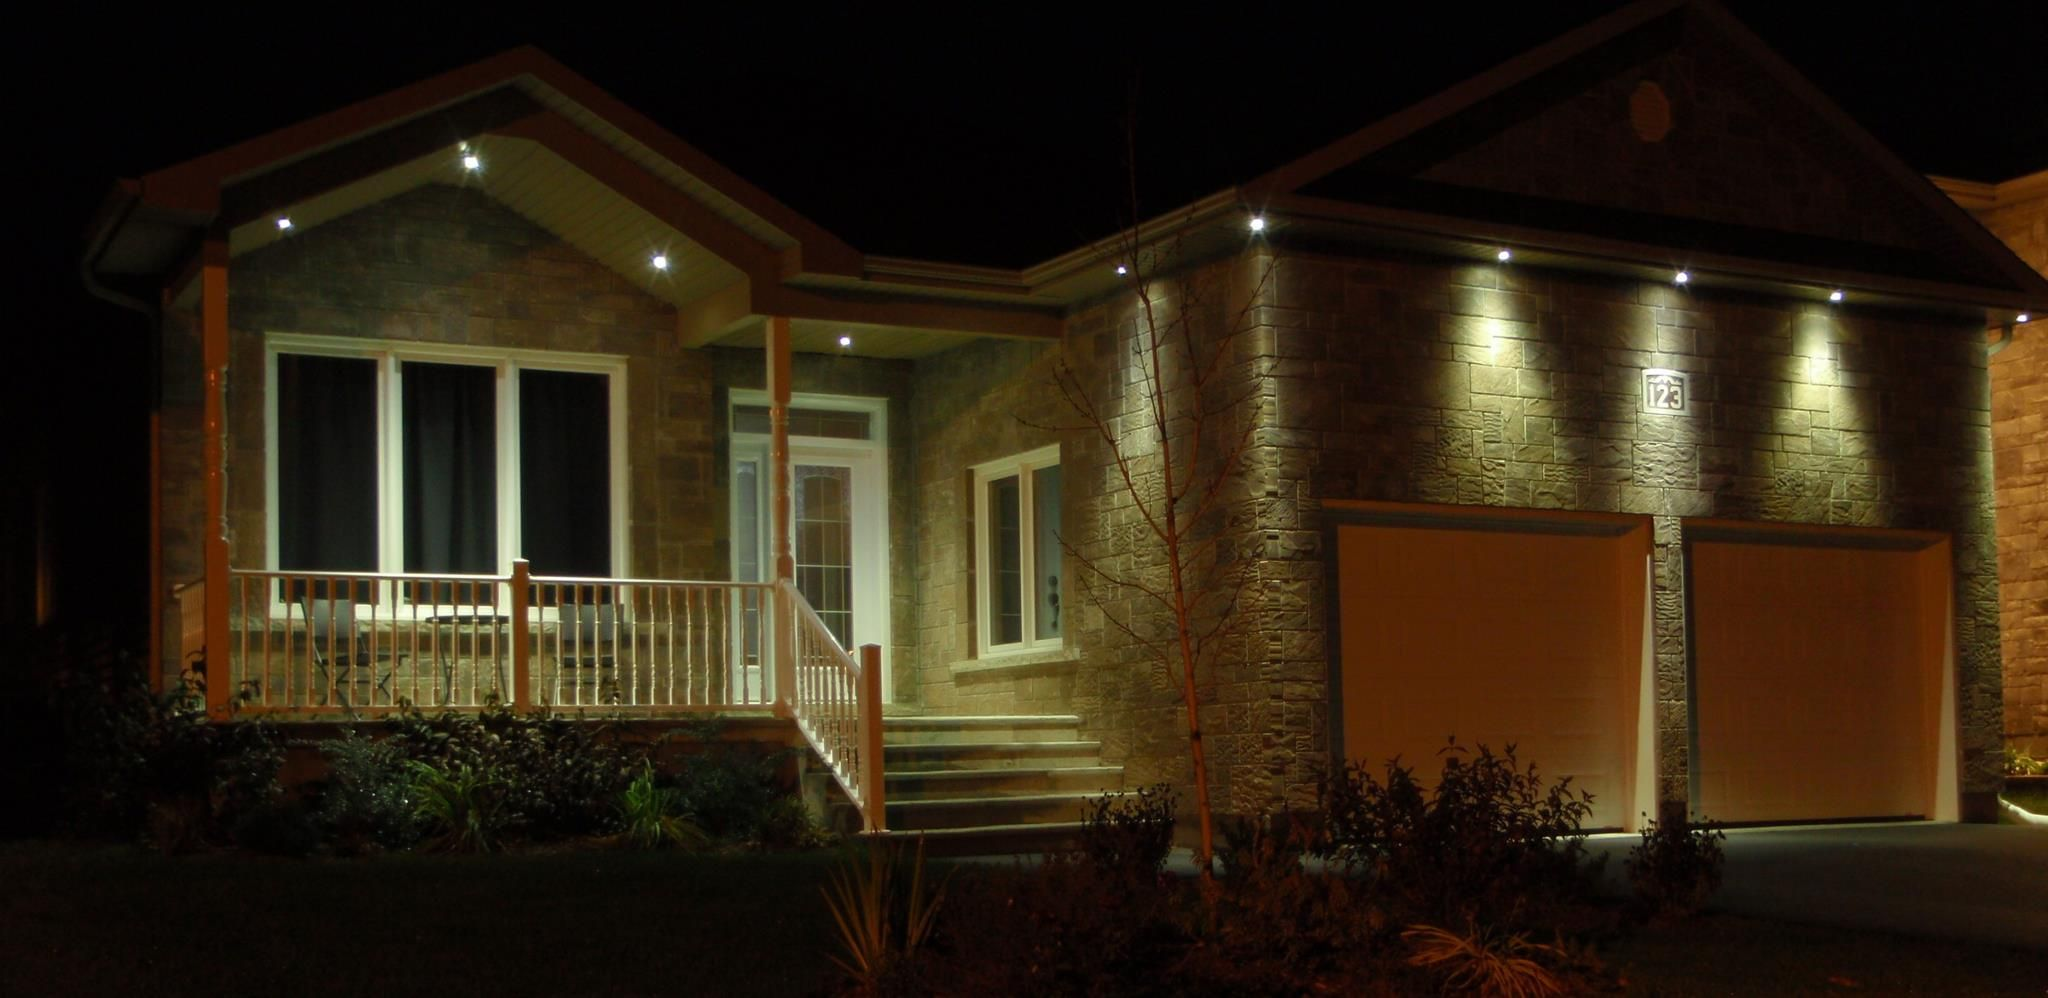 Delphitech Led Outdoor Lighting Better Exterior Home Designs Installs More Savings Than Cheap Outdoor Recessed Lighting Front House Lights Patio Lighting